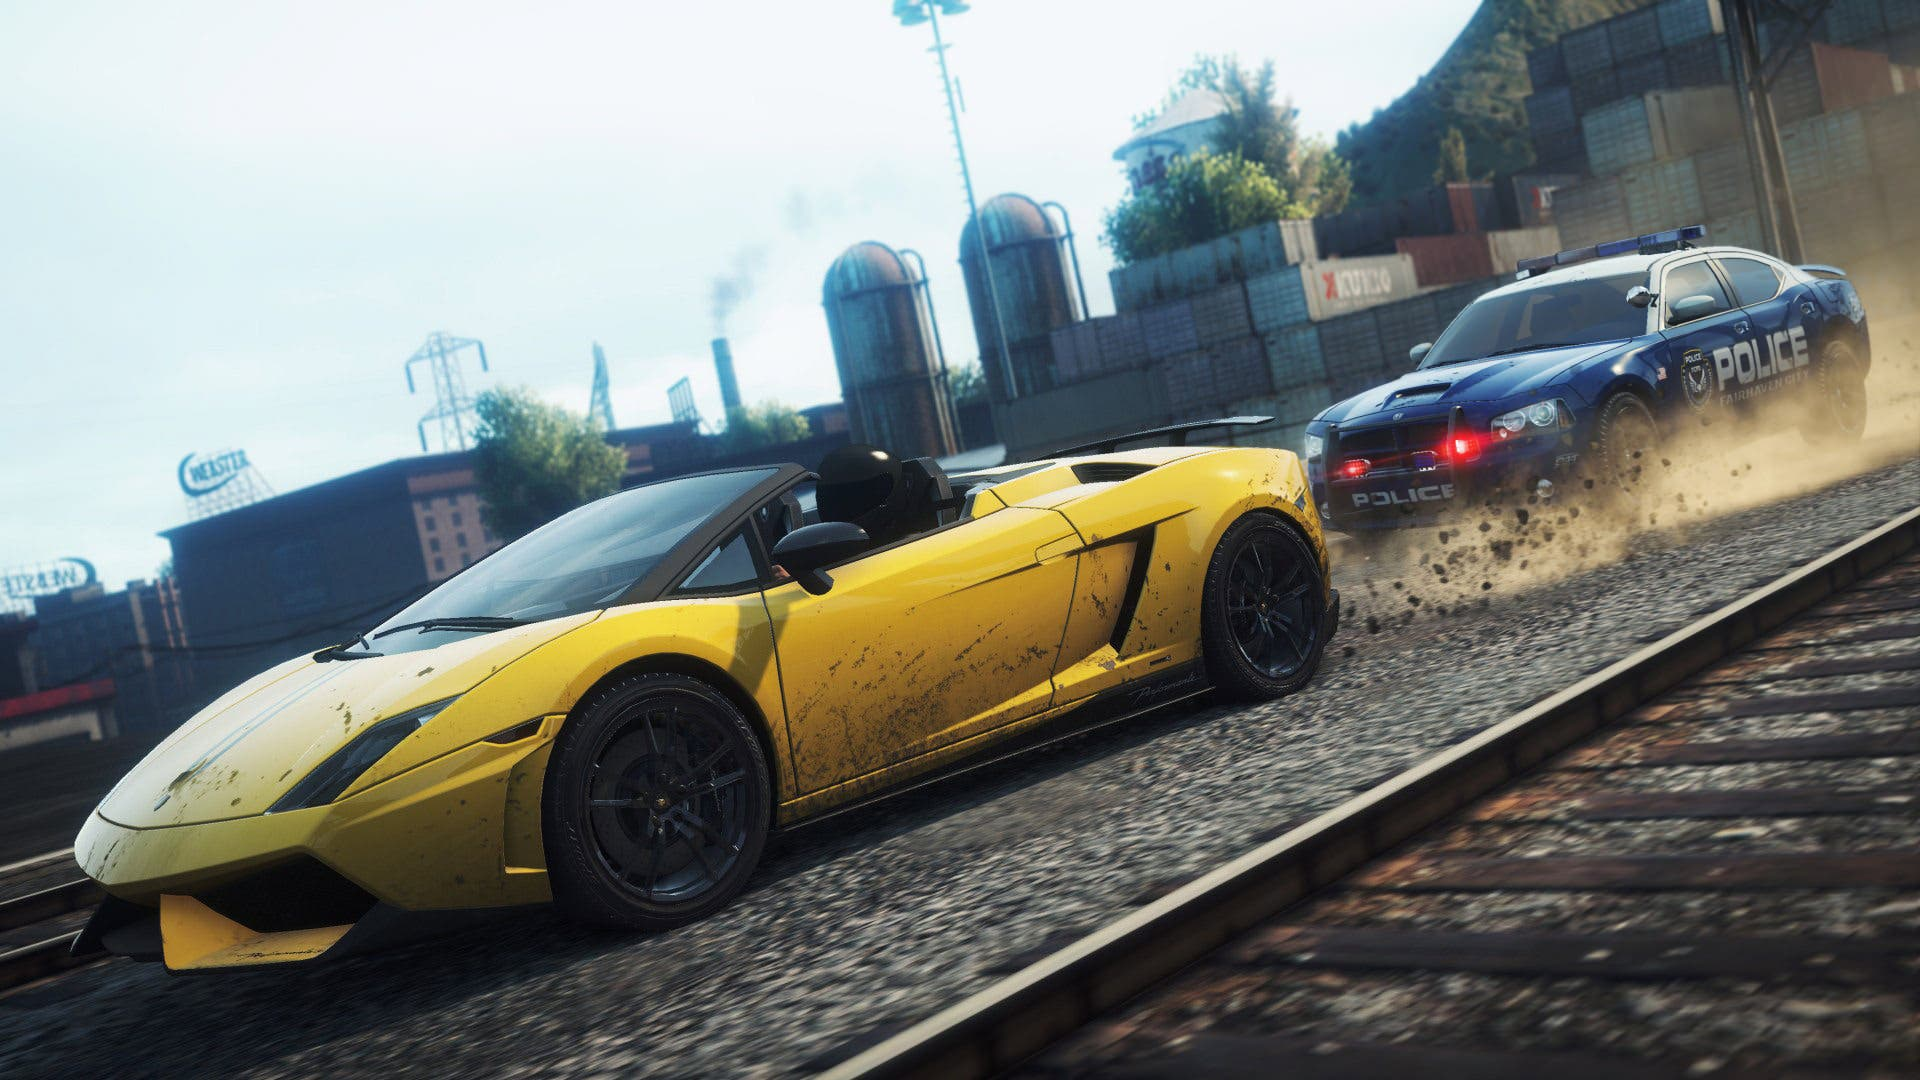 Nueva actualización para 'Need for Speed: Most Wanted' y una futura para 'Toki Tori 2'